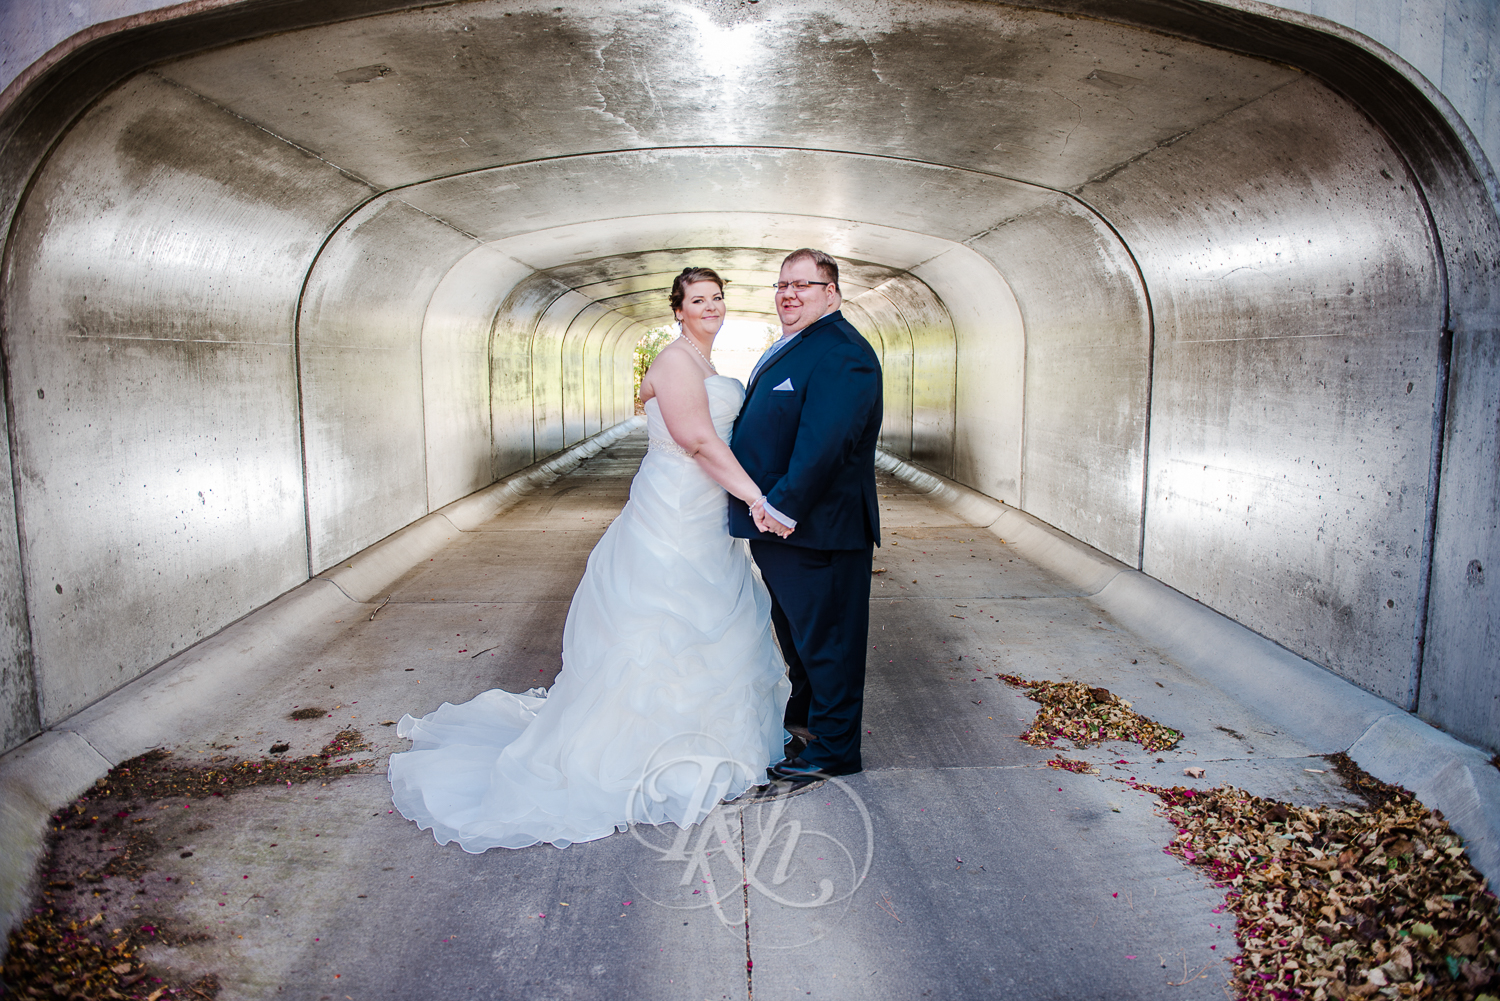 Woodbury Wedding Photography - Amber & Tristan - RKH Images-17